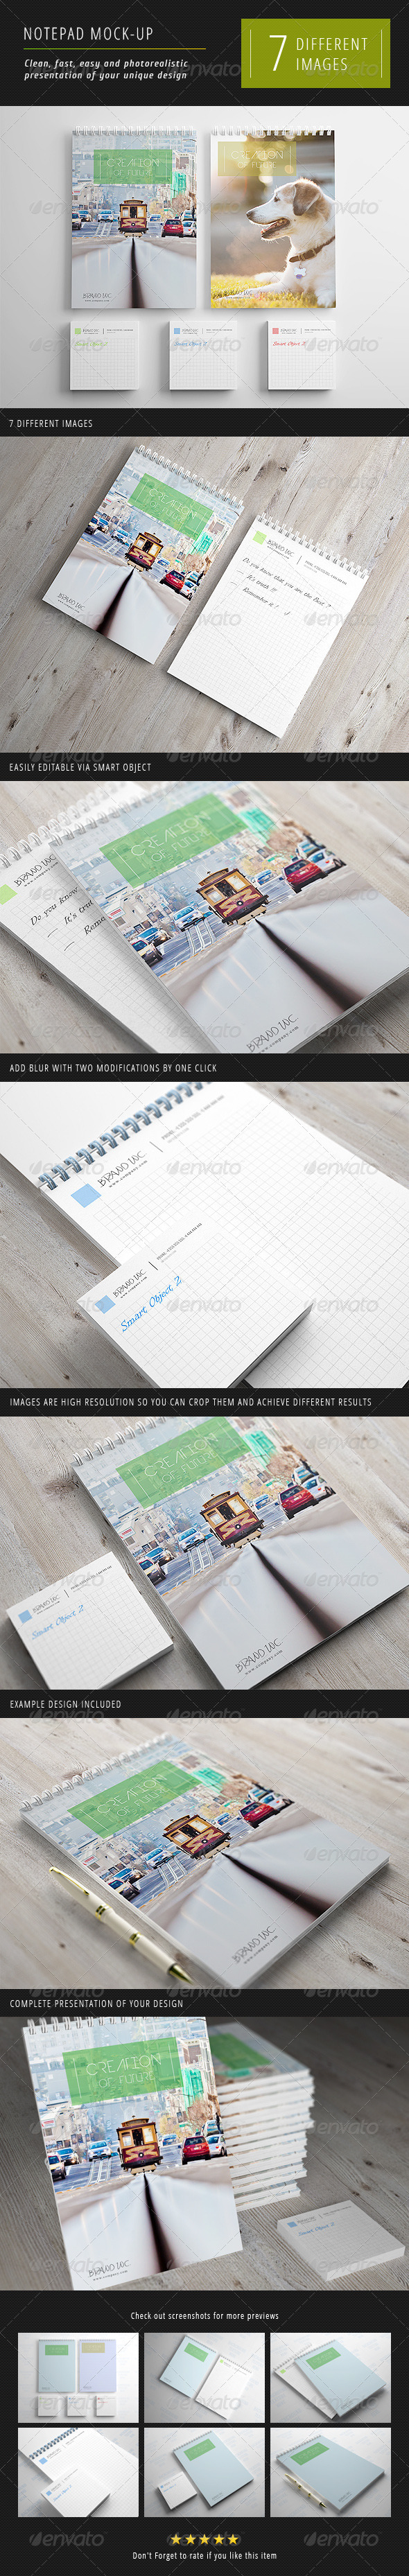 GraphicRiver Notepad Mock-Up 1 3220046